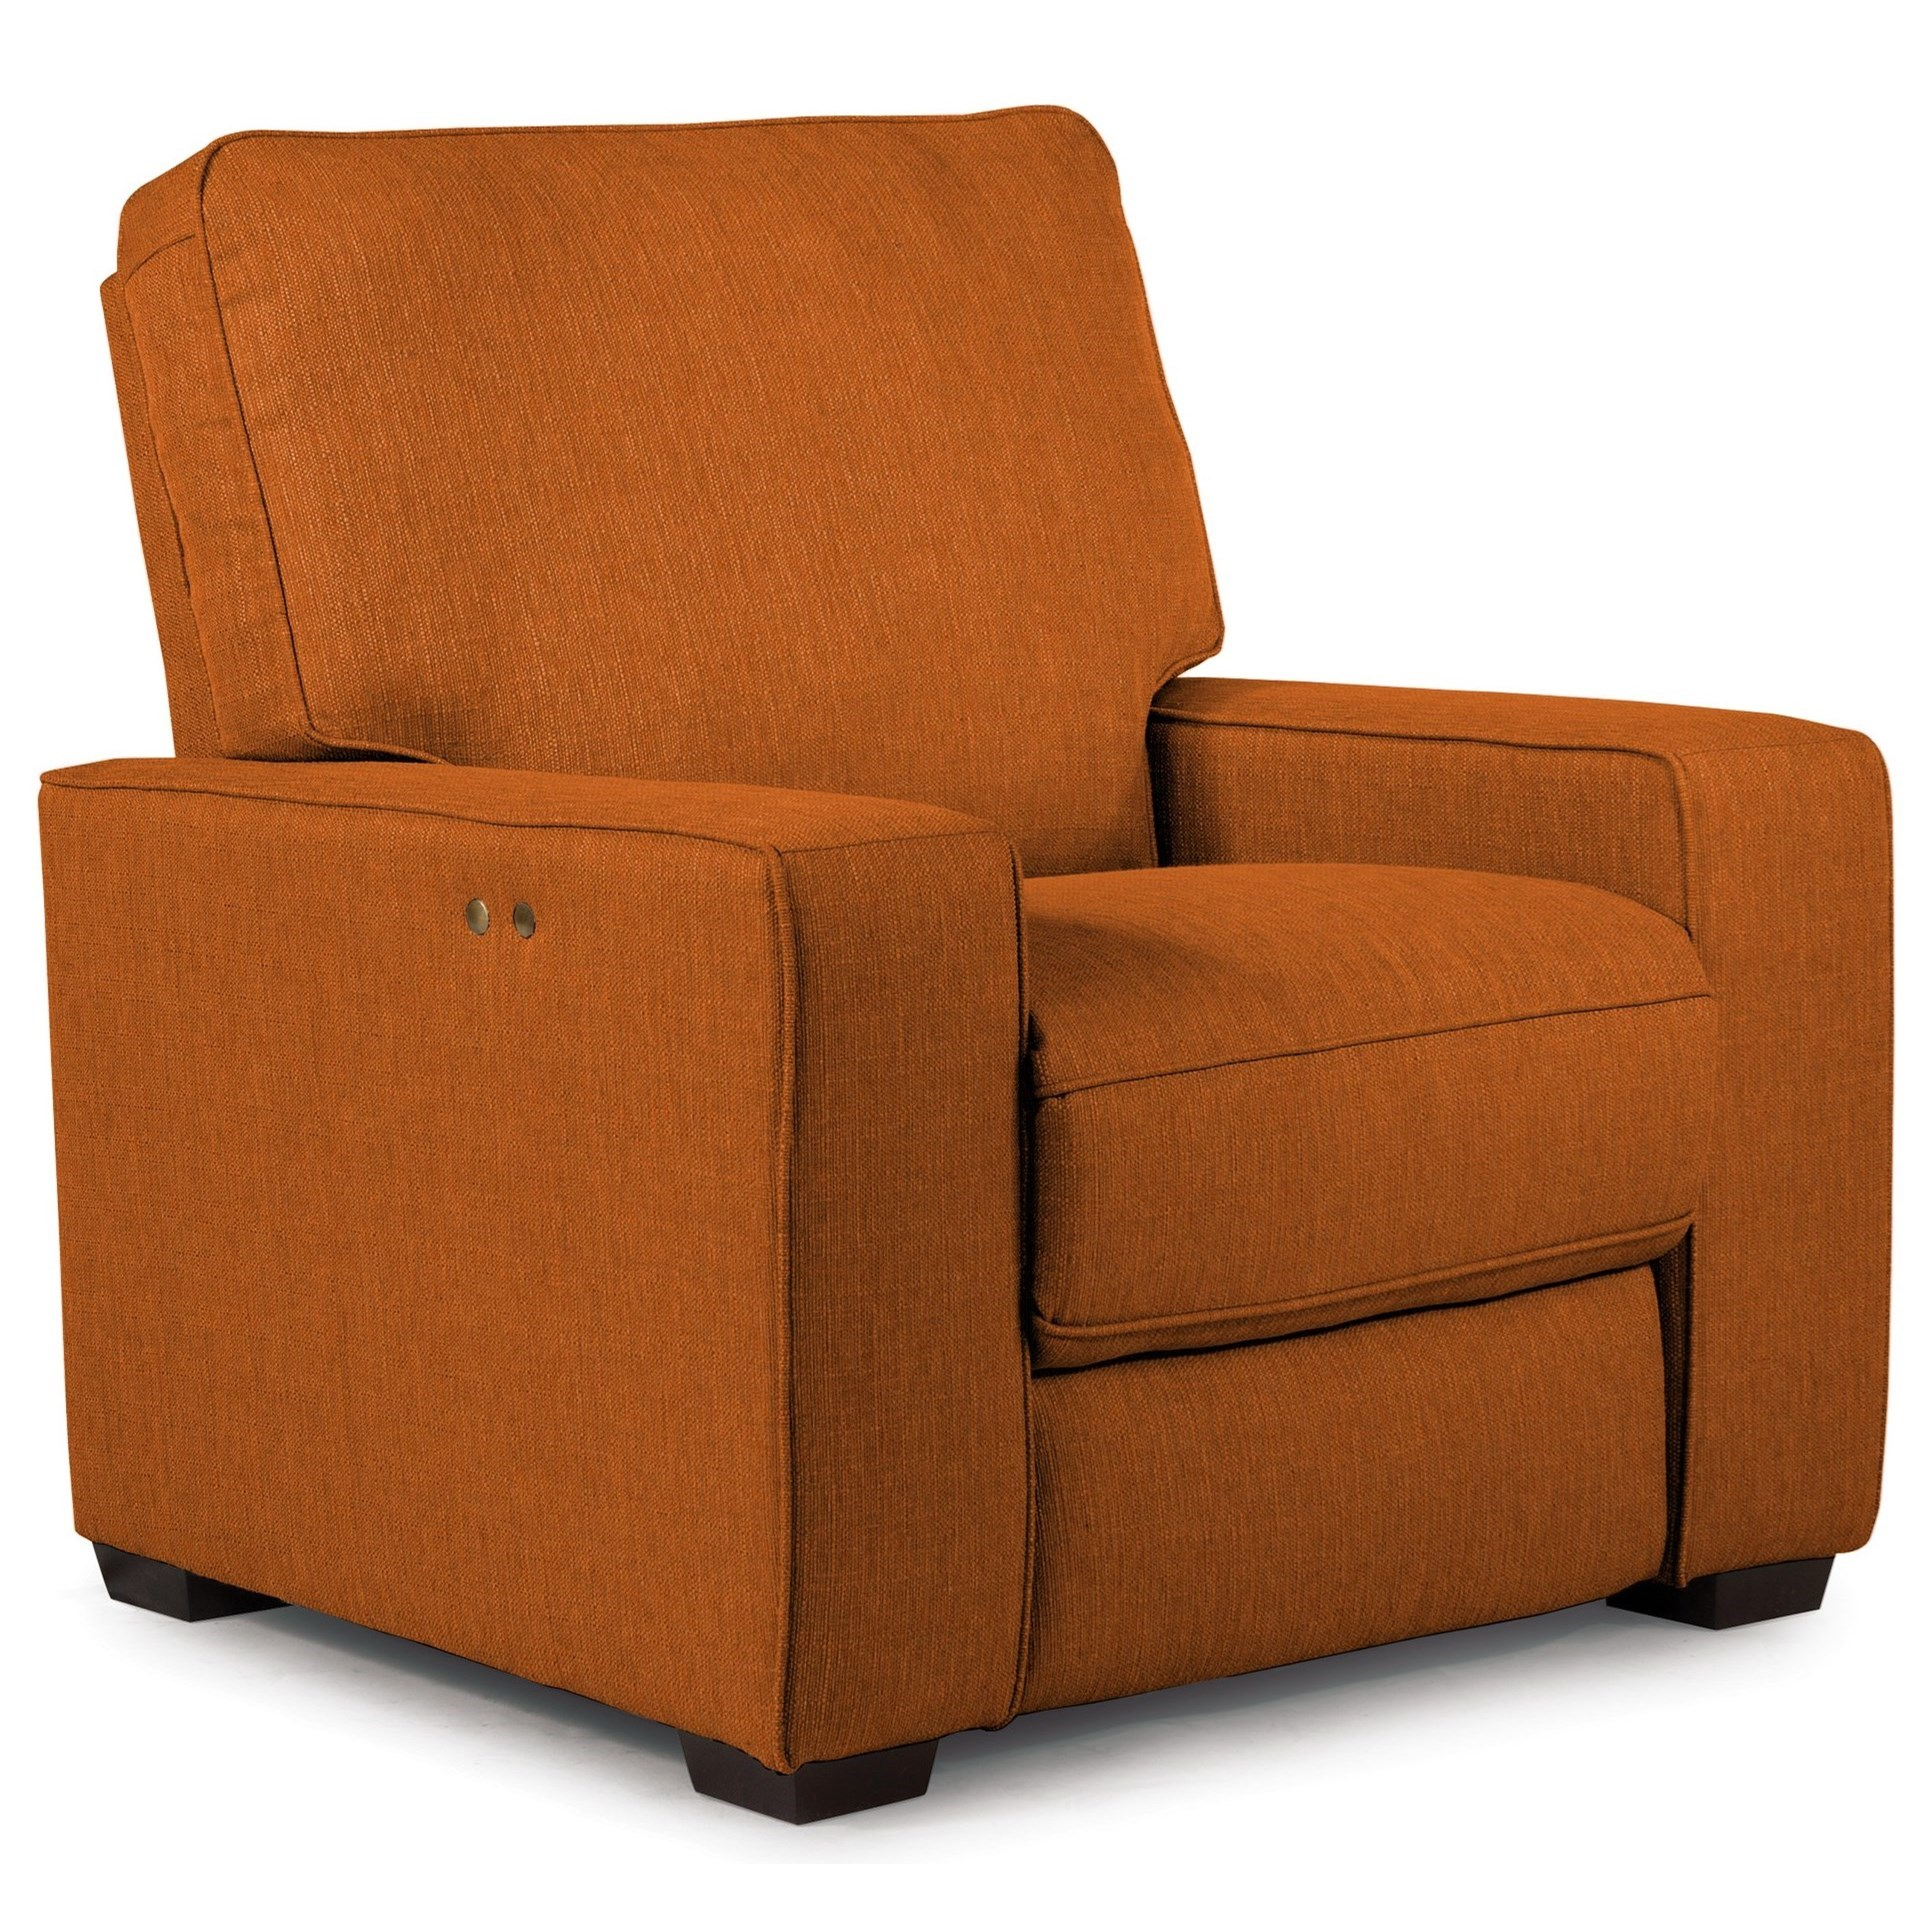 Best Home Furnishings Celena Power Reclining Space Saver Chair - Item Number: 270806188-20134